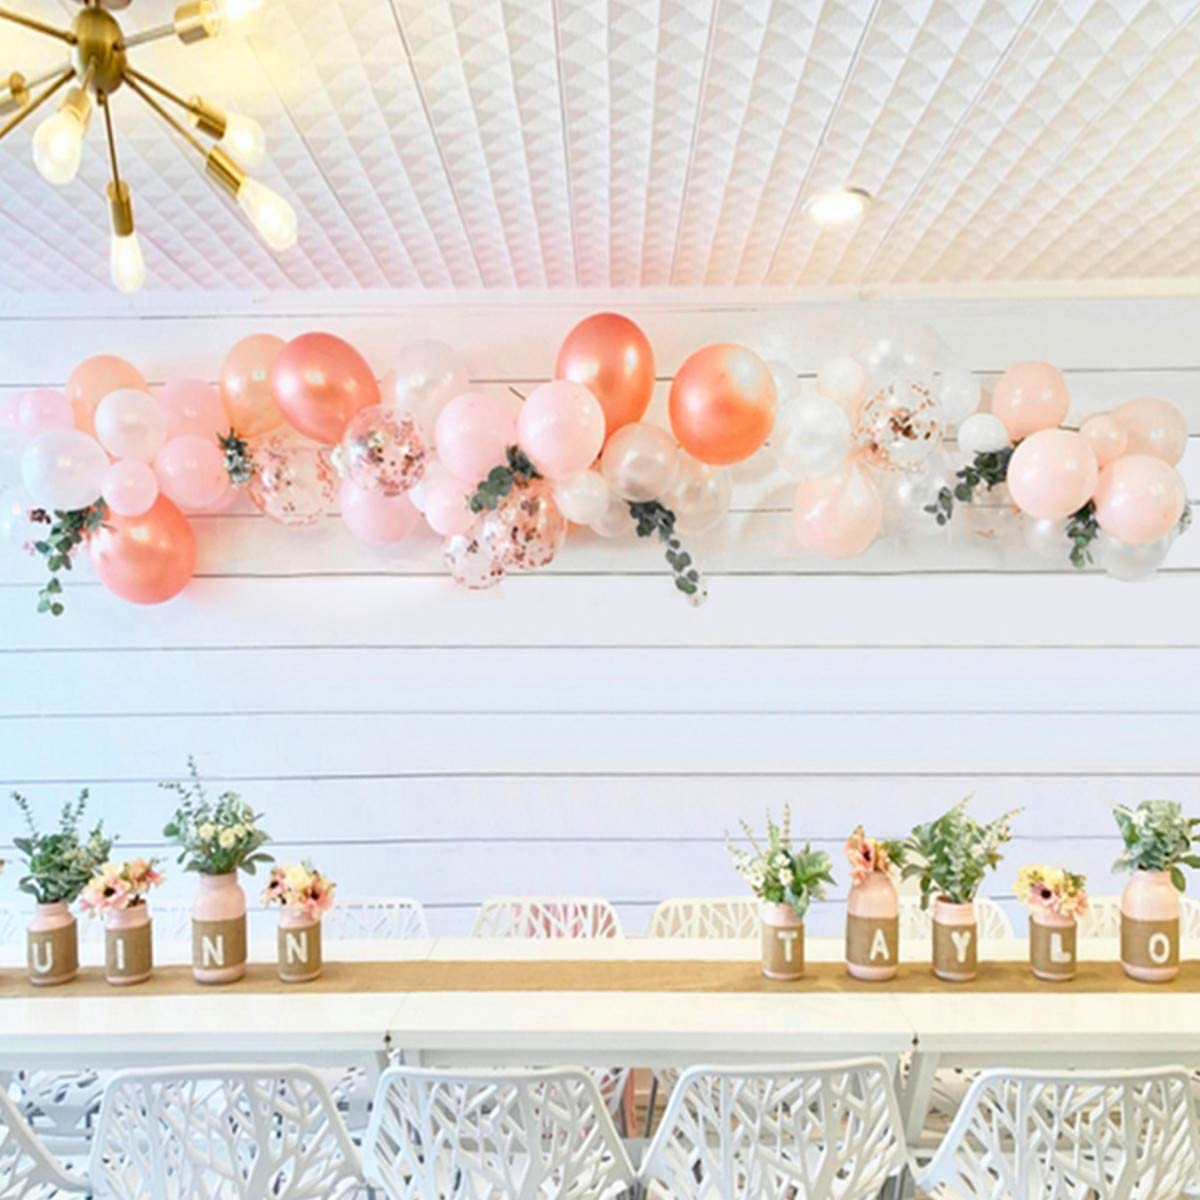 Balloon Arch & Garland Kit |100Pcs Rose Gold,Blush Pink &White Latex Party Balloons|16Ft Decorating Strip,Tying Tool,Glue Dots,Flower Clips| Wedding Birthday Baby Shower Bachelorette Party Decorations